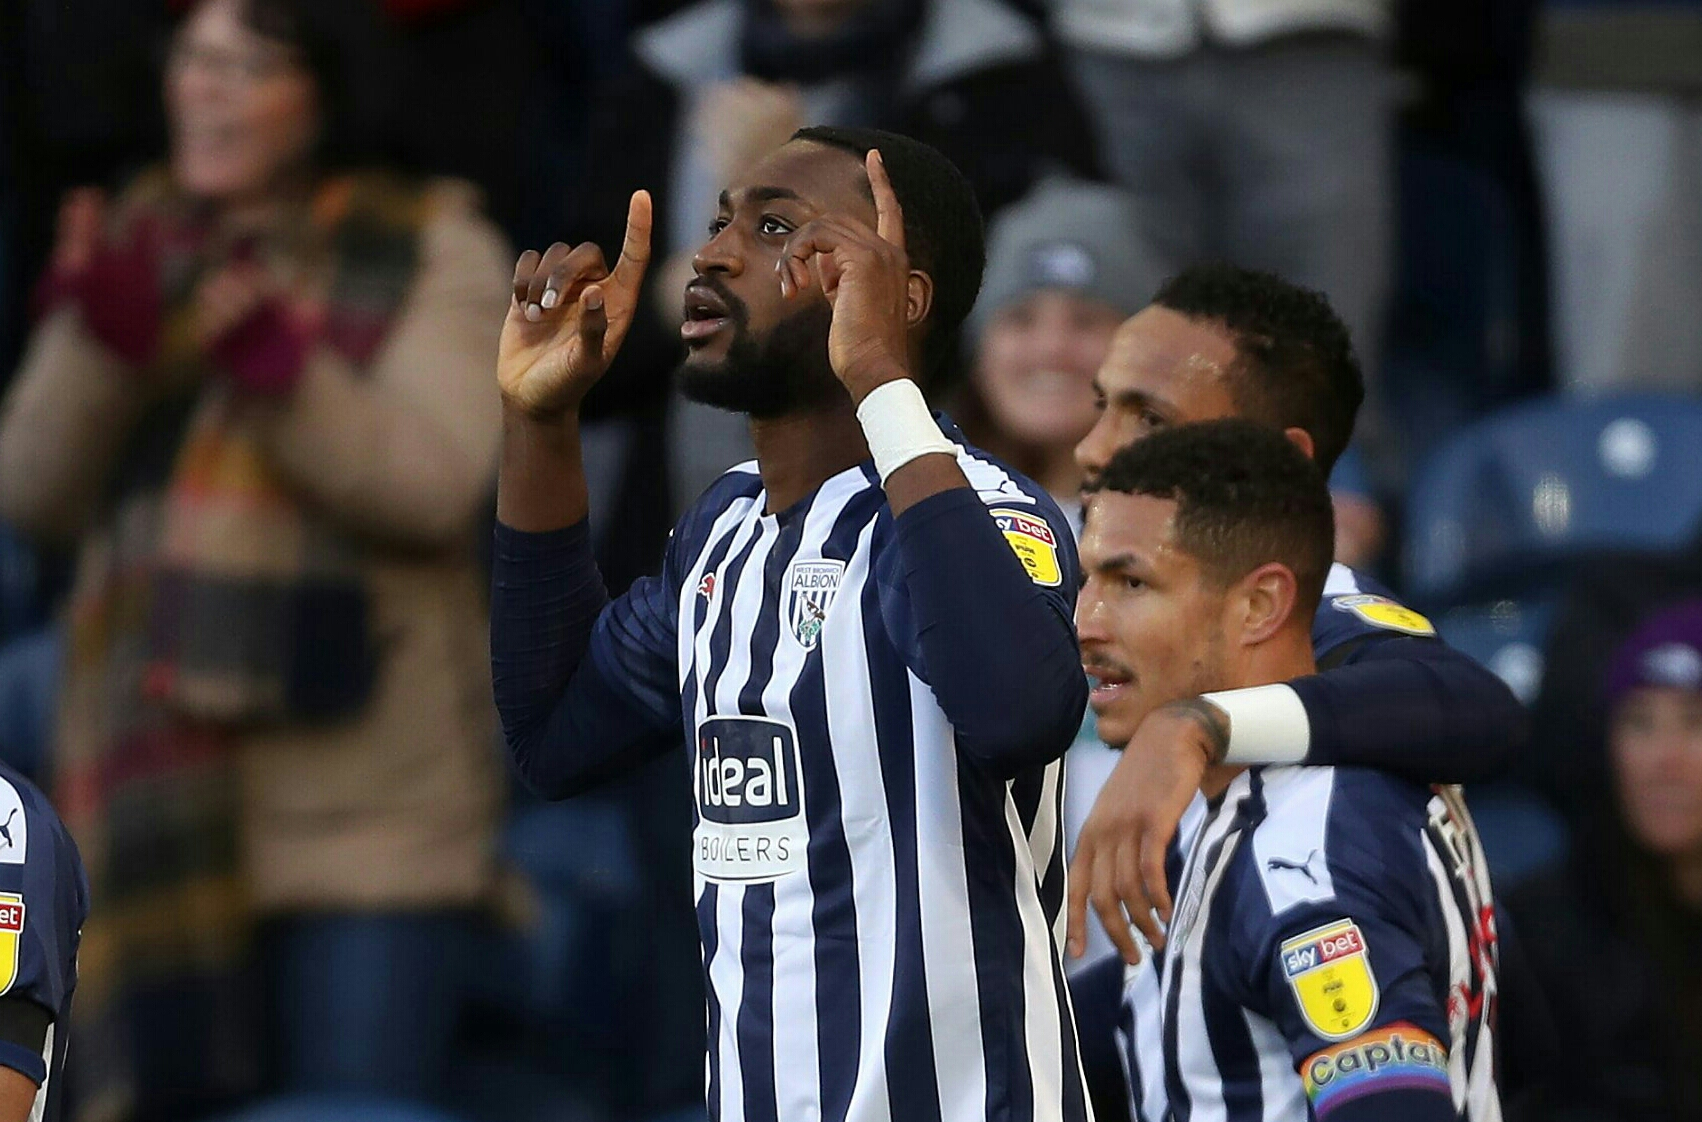 Championship: Ajayi Helps West Brom Secure Win Vs Derby, Climb To Top